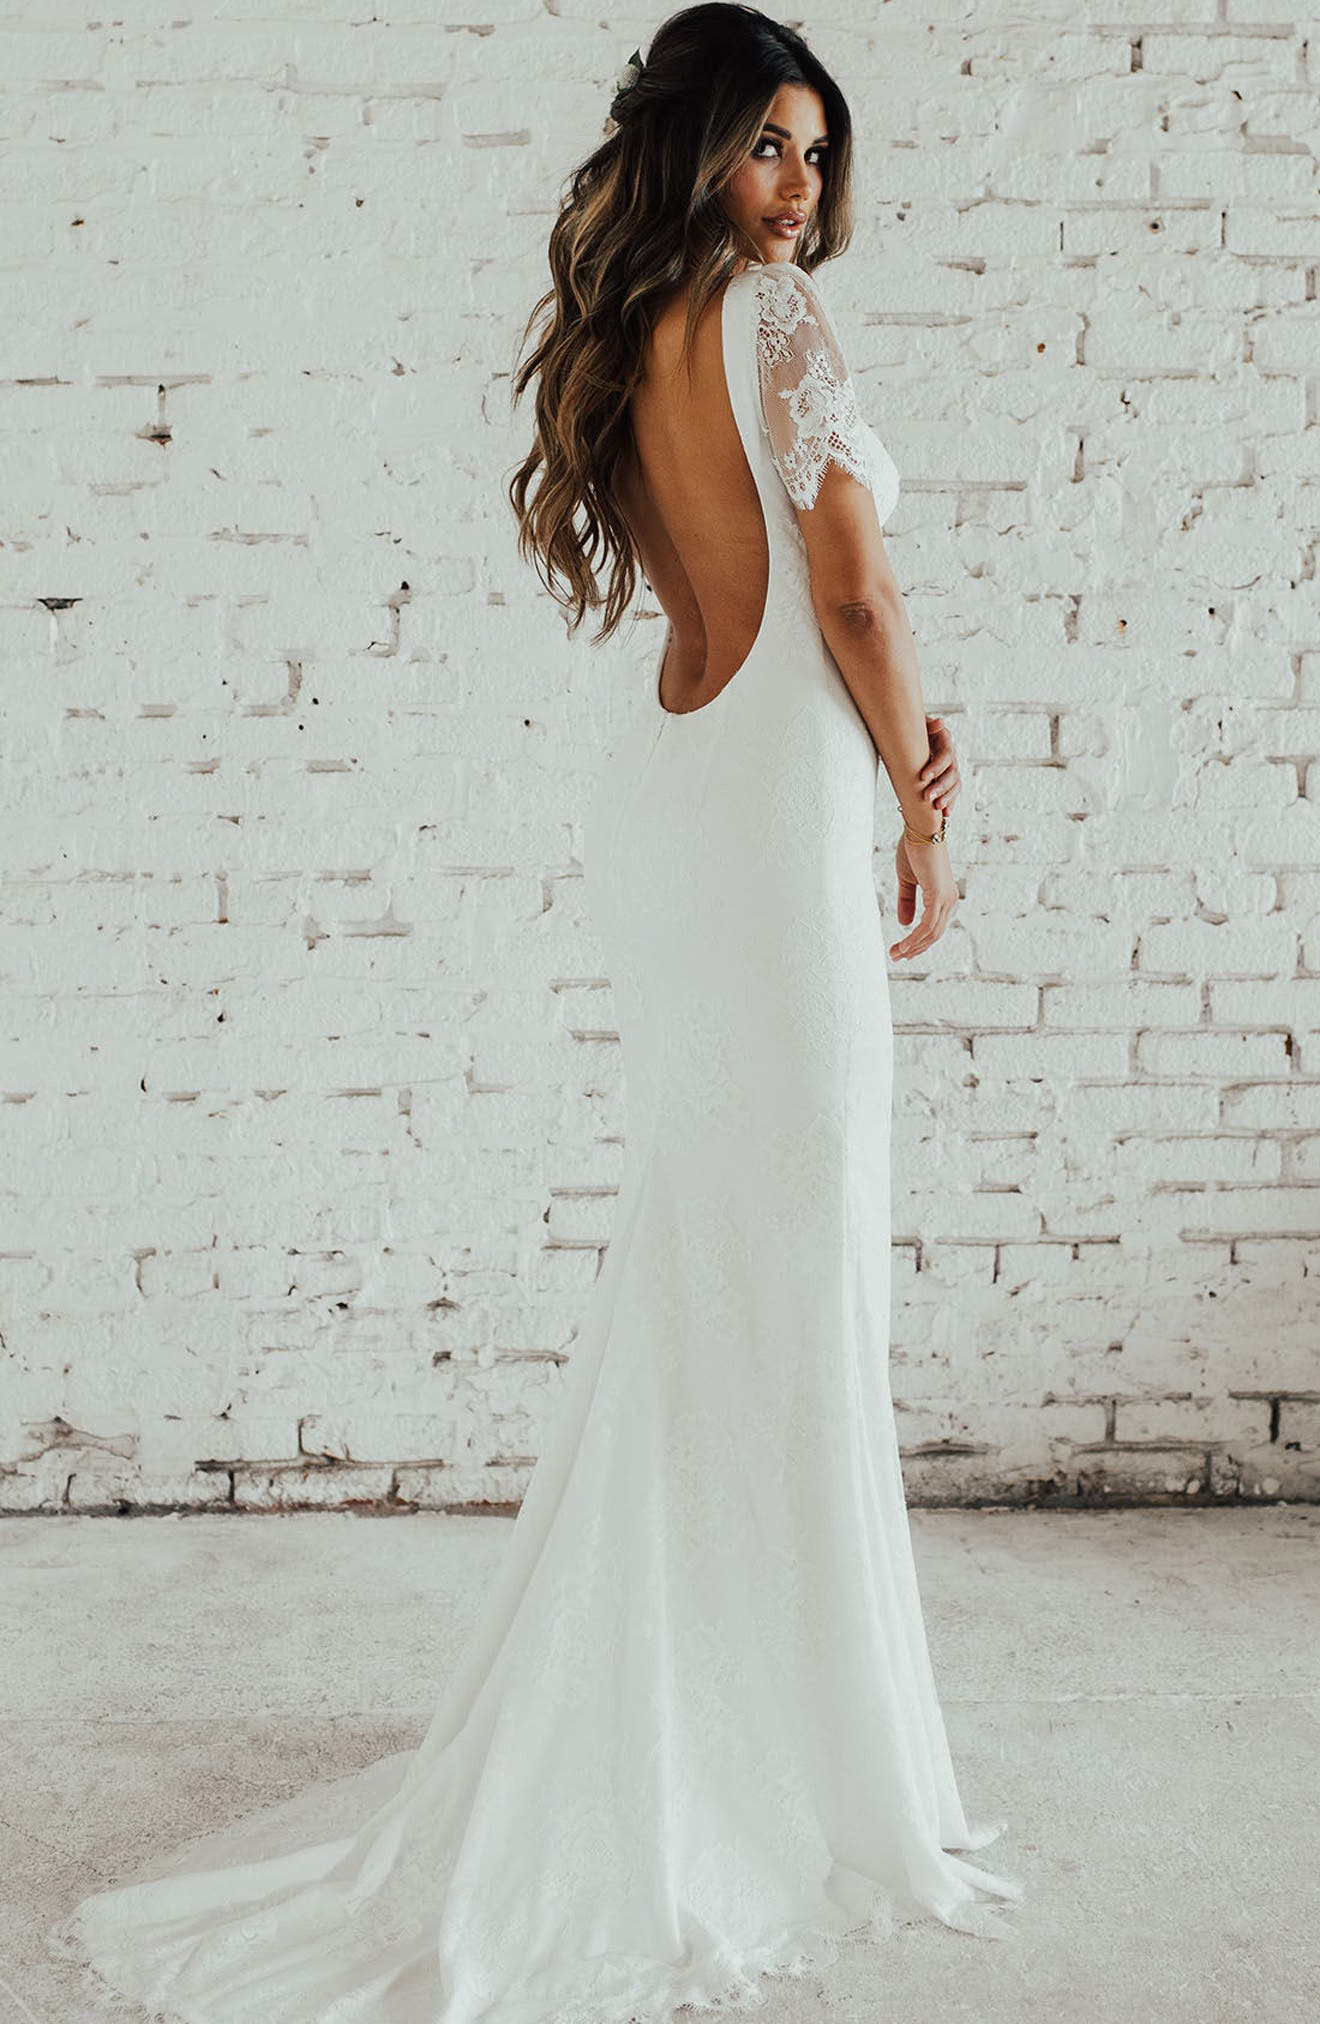 Malaga Lace Trumpet Gown,                             Alternate thumbnail 3, color,                             Ivory/ Ivory